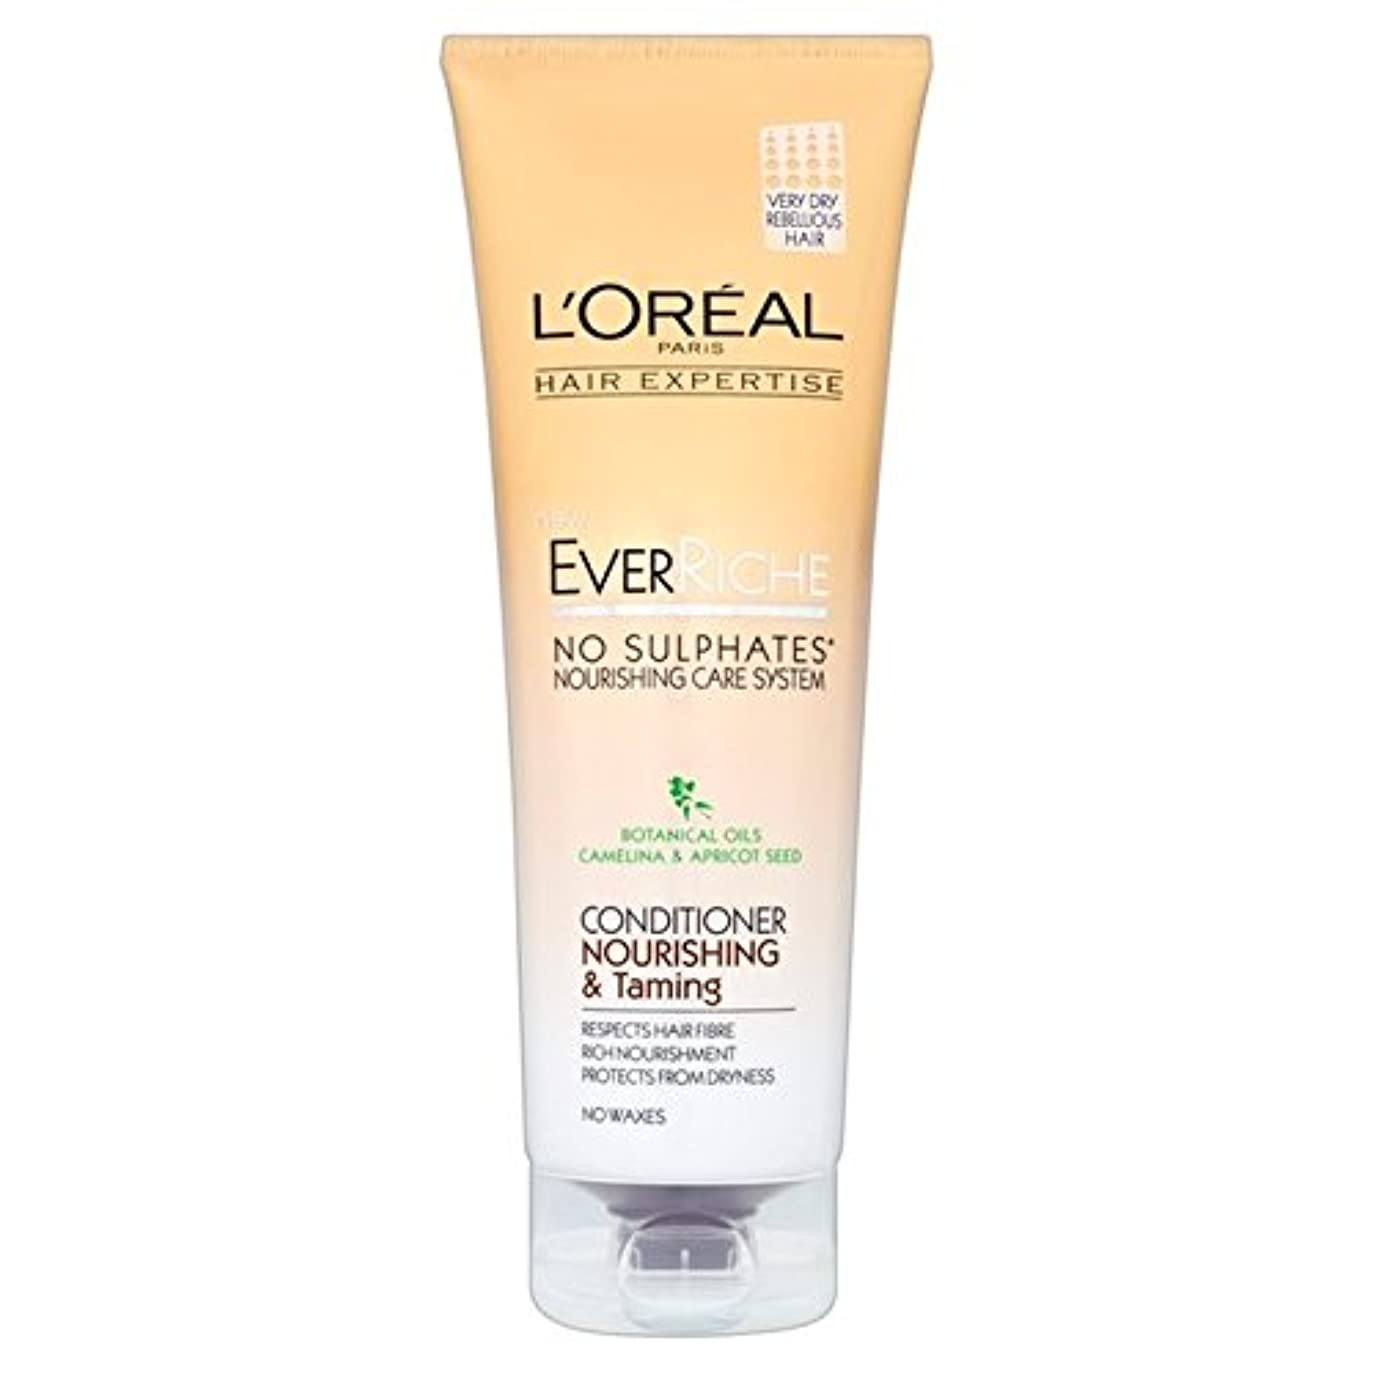 L'Oreal Hair Expertise Ever Riche Conditioner Nour & Taming 250ml (Pack of 6) - ロレアルの髪の専門知識、これまでリッシュコンディショナーヌール...